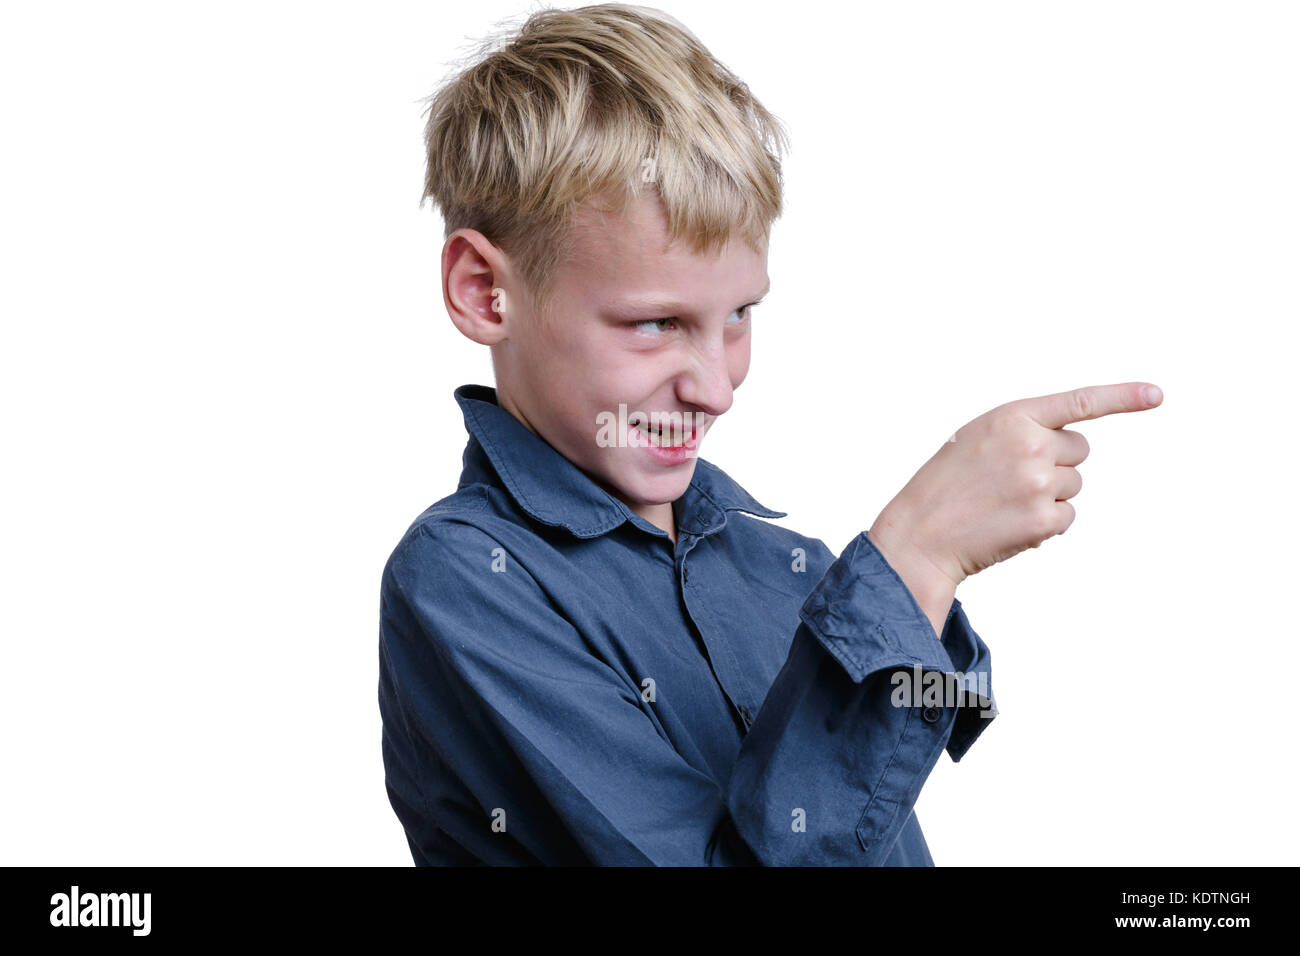 10-years old boy pointing on somebody. Isolated on white - Stock Image